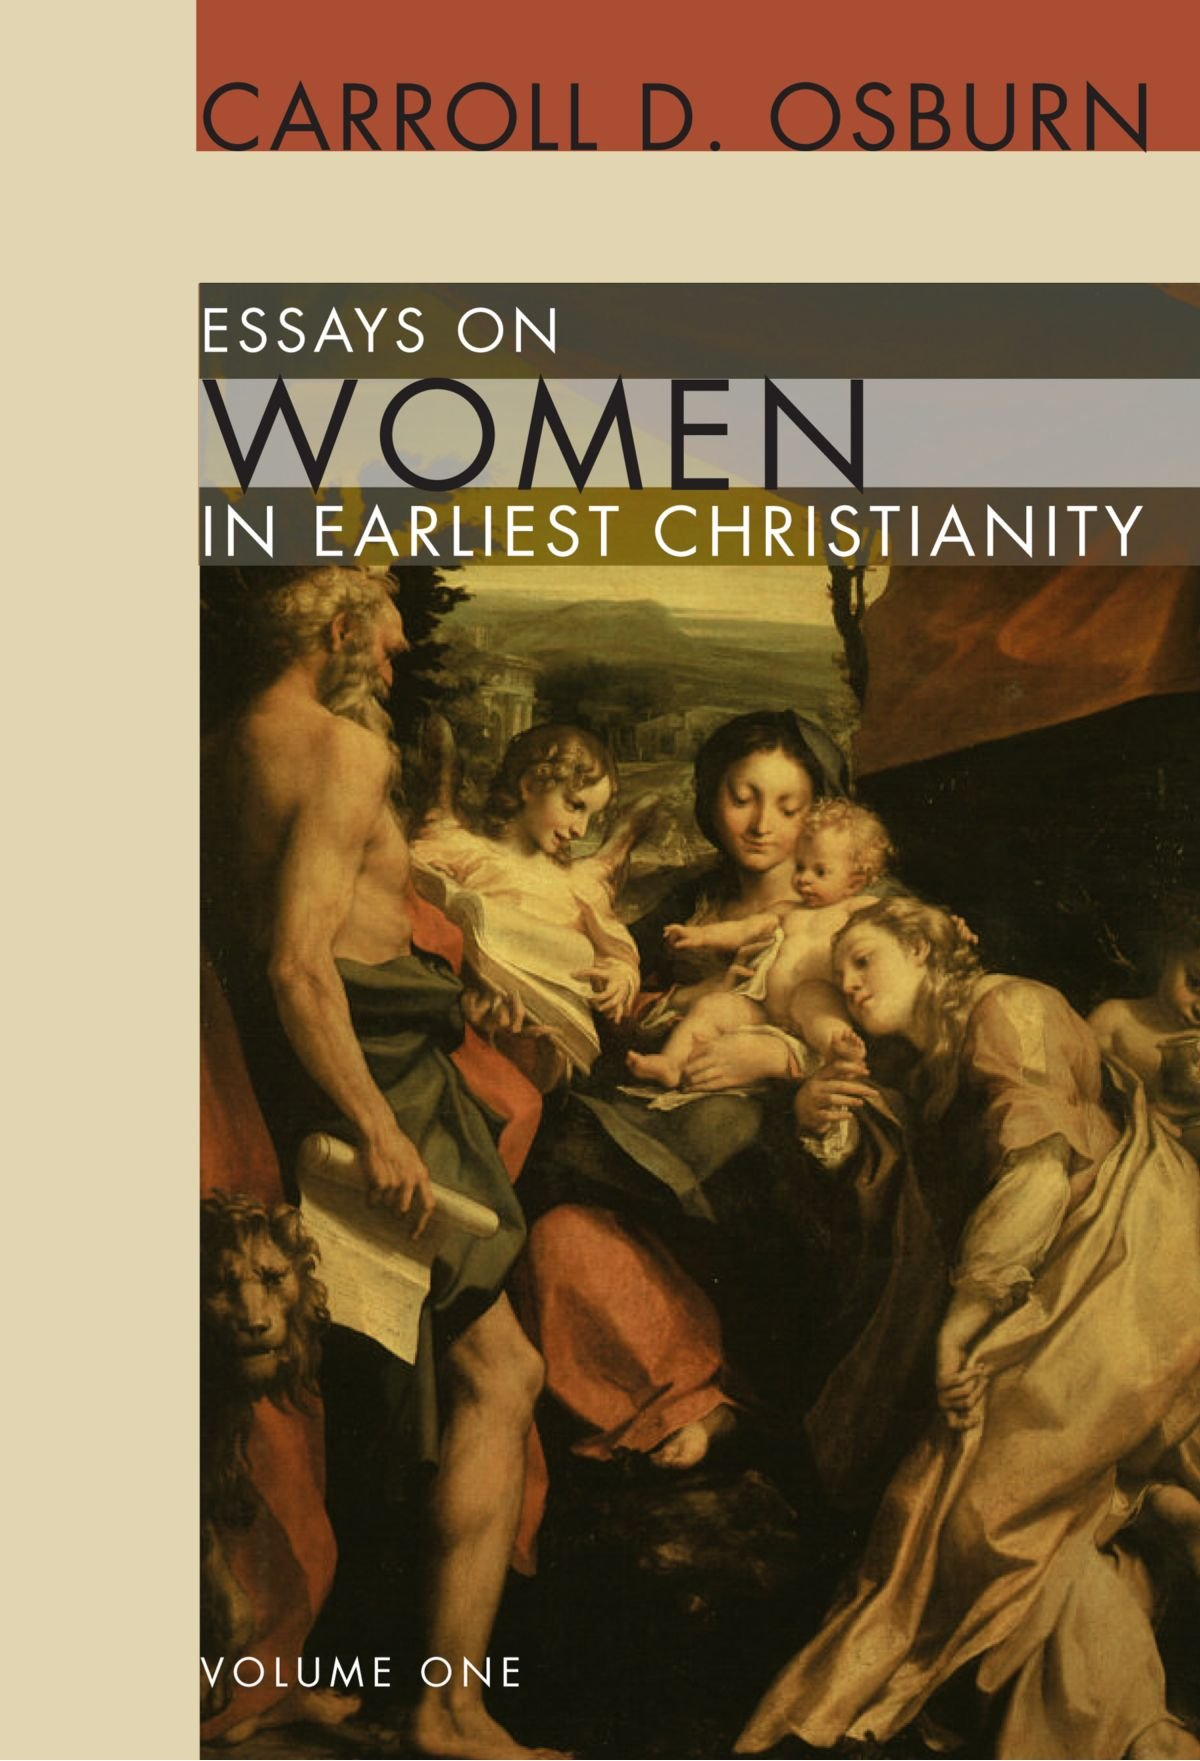 essays on women in earliest christianity volume 1 carroll d essays on women in earliest christianity volume 1 carroll d osburn 9781556355400 amazon com books